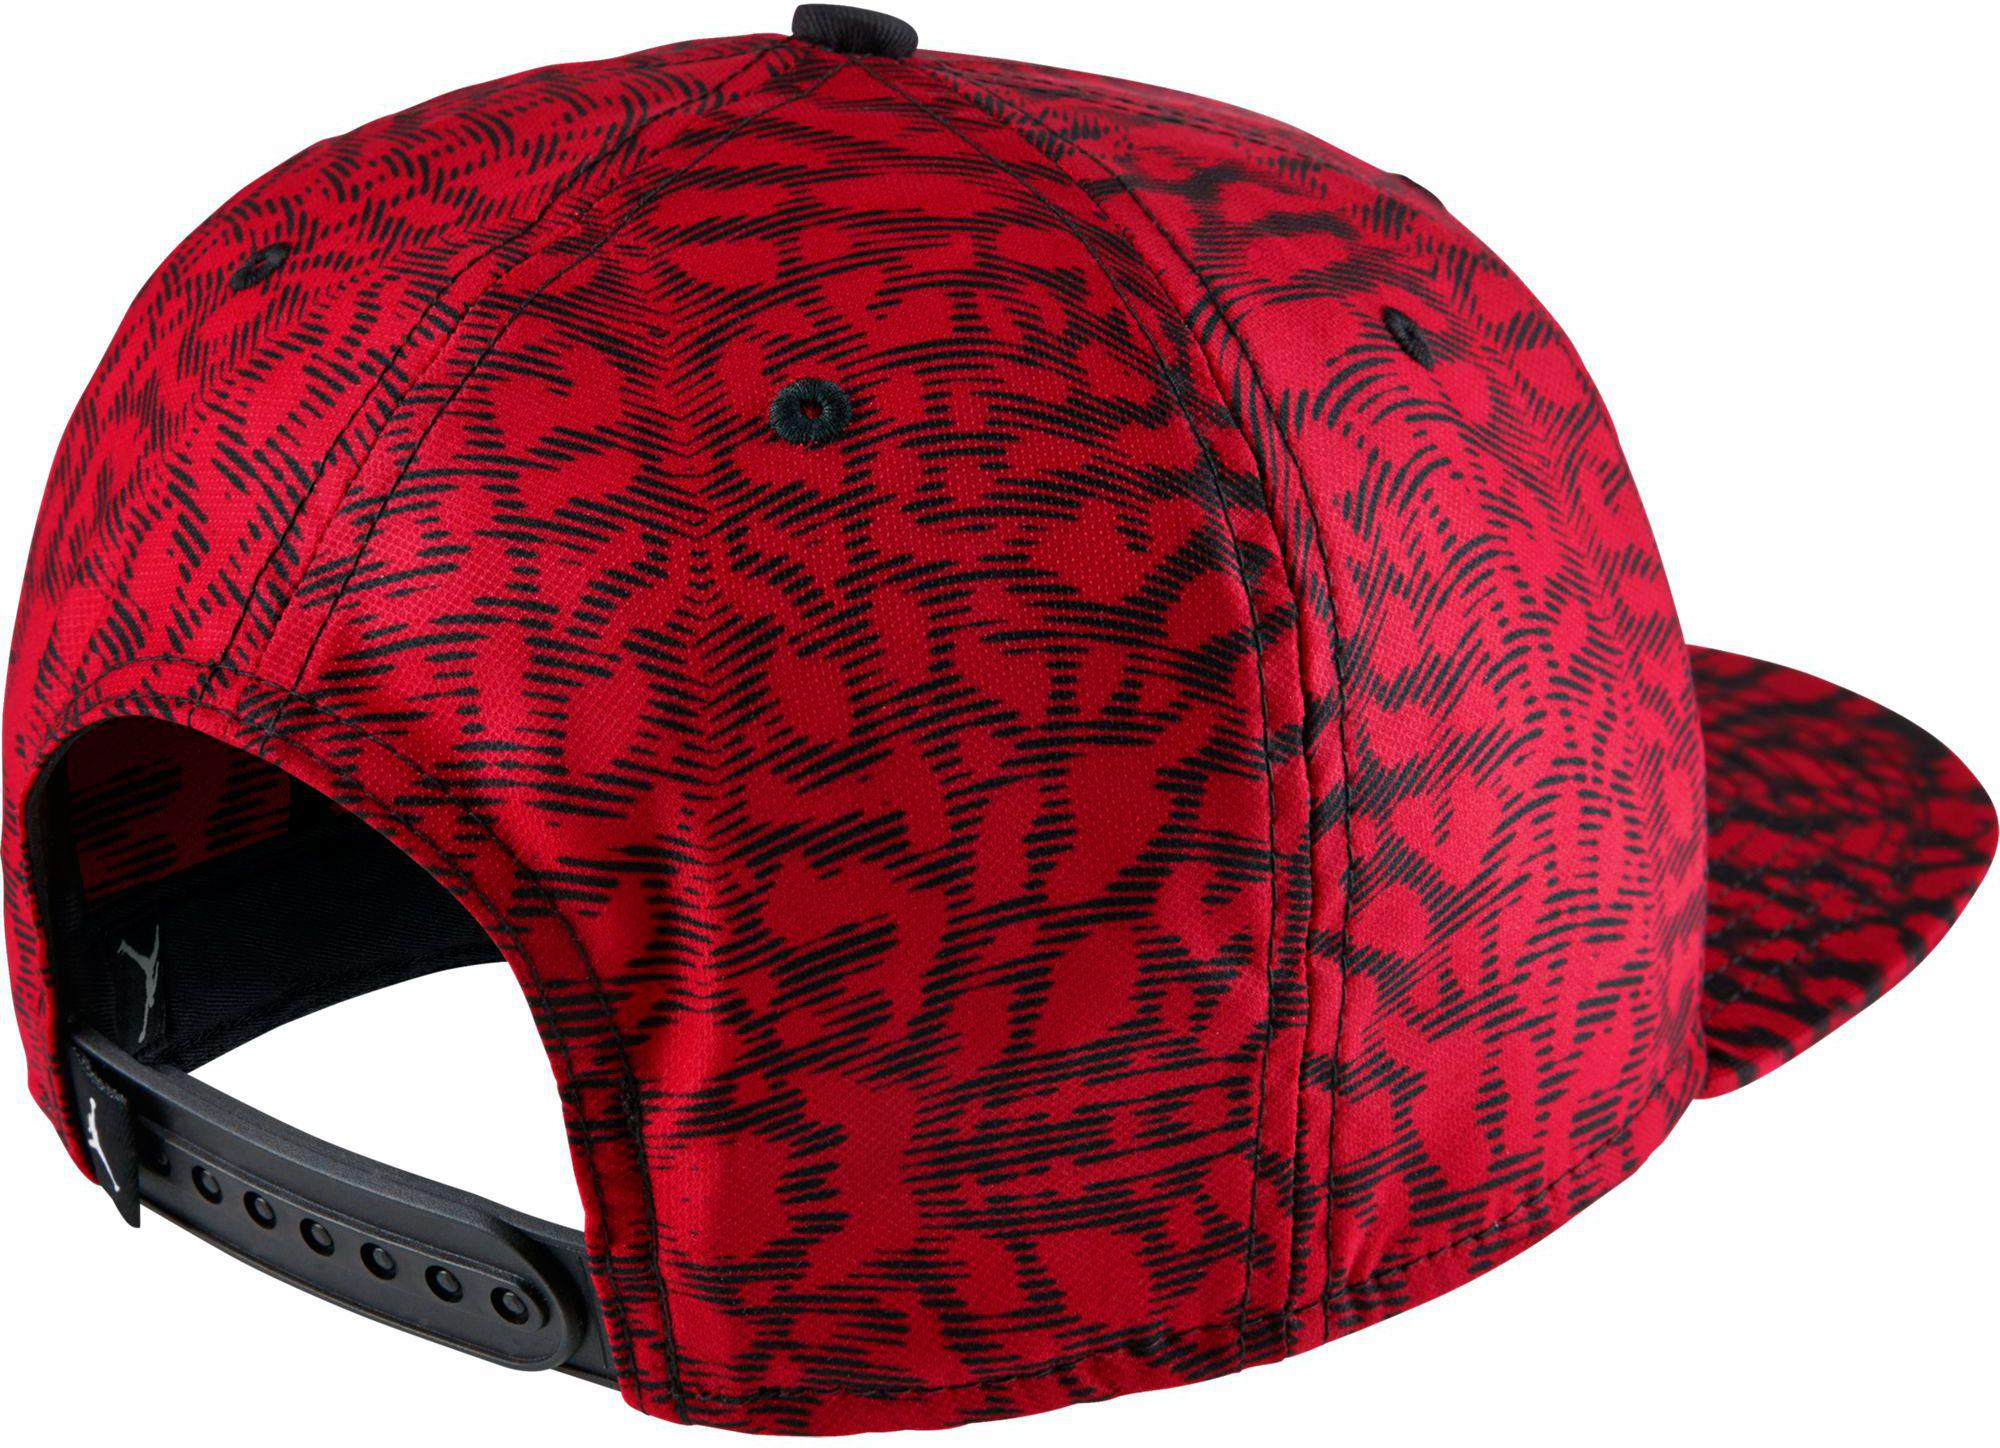 251ba12c1cae5 ... discount code for lyst nike jordan jumpman seasonal adjustable hat in  red for men b00ac 8bfe0